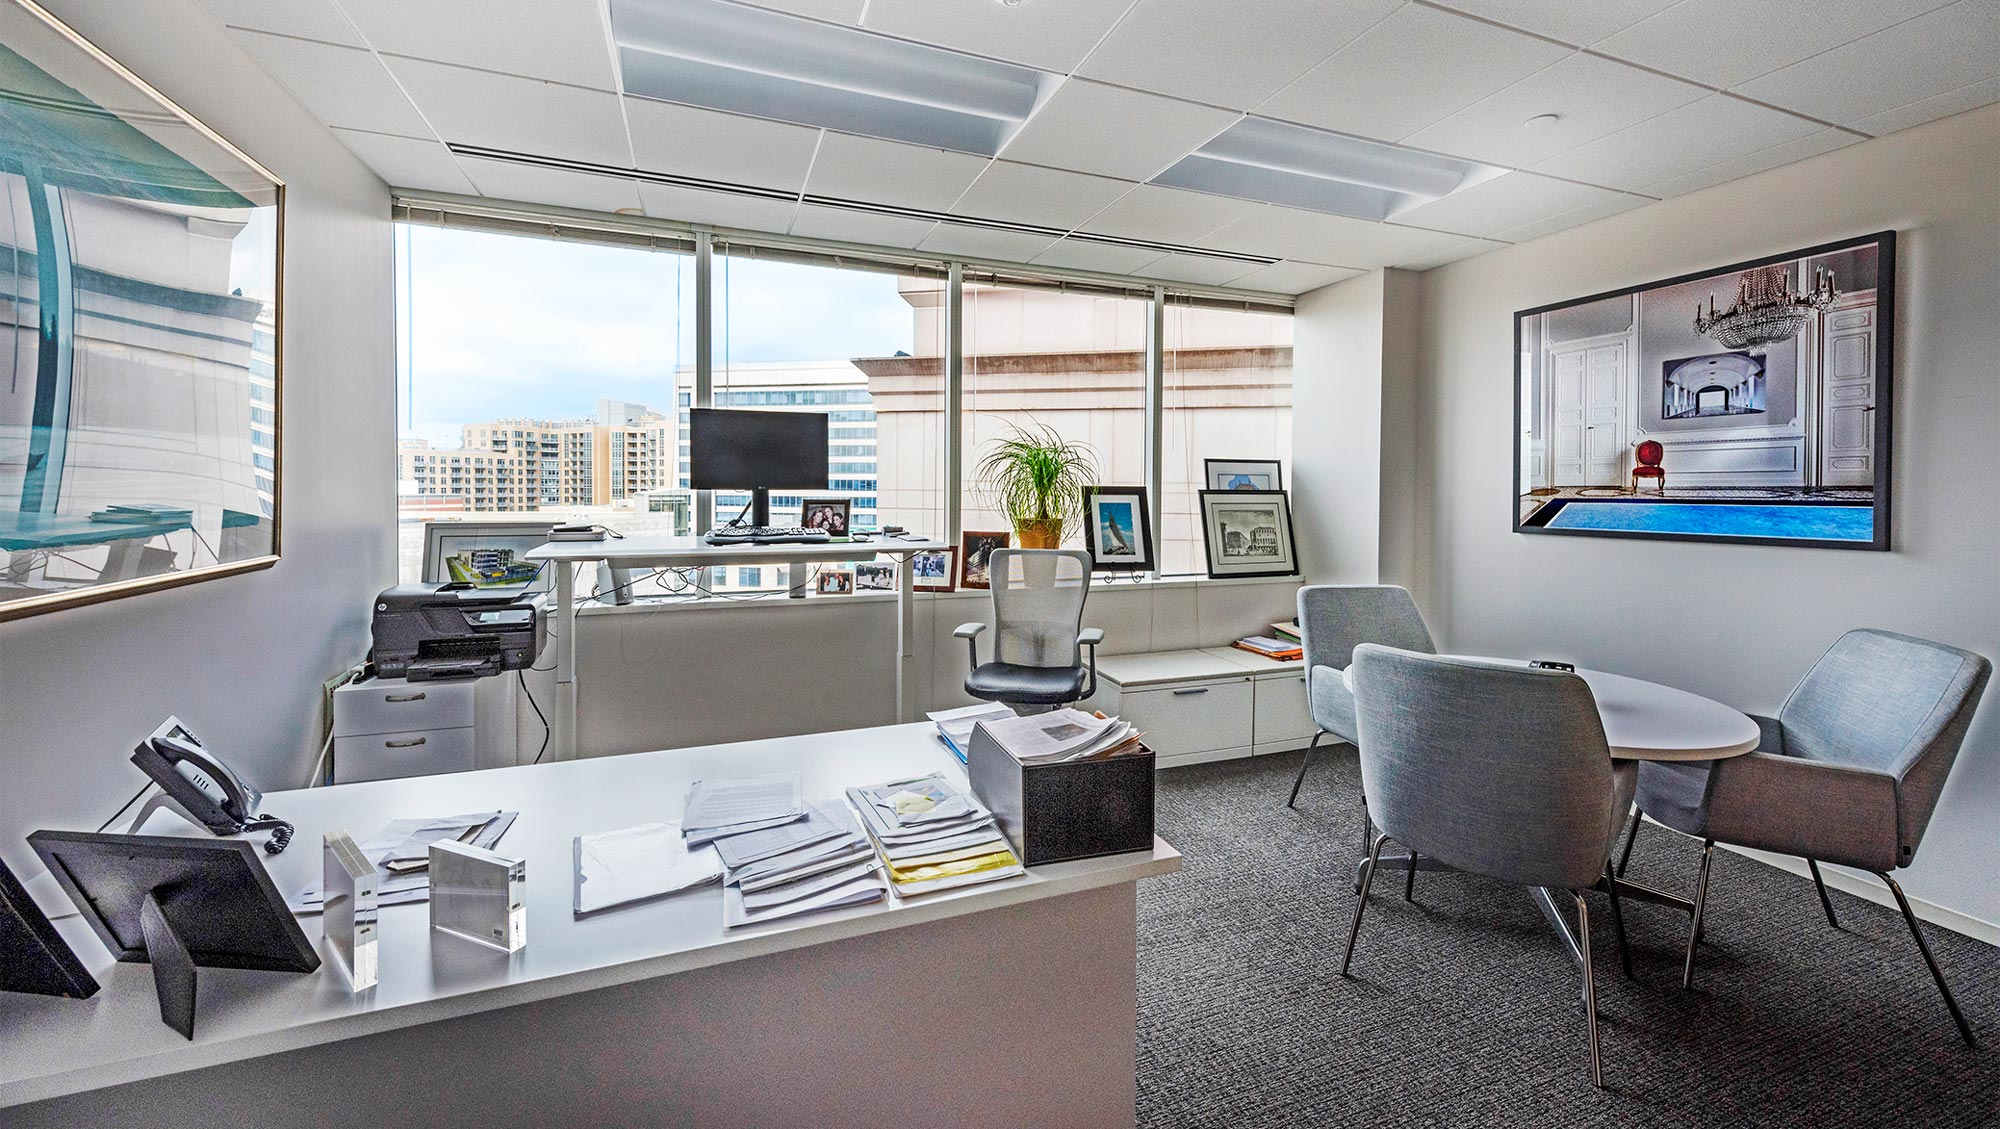 office space images. Chevy Chase Office Space Photo Images